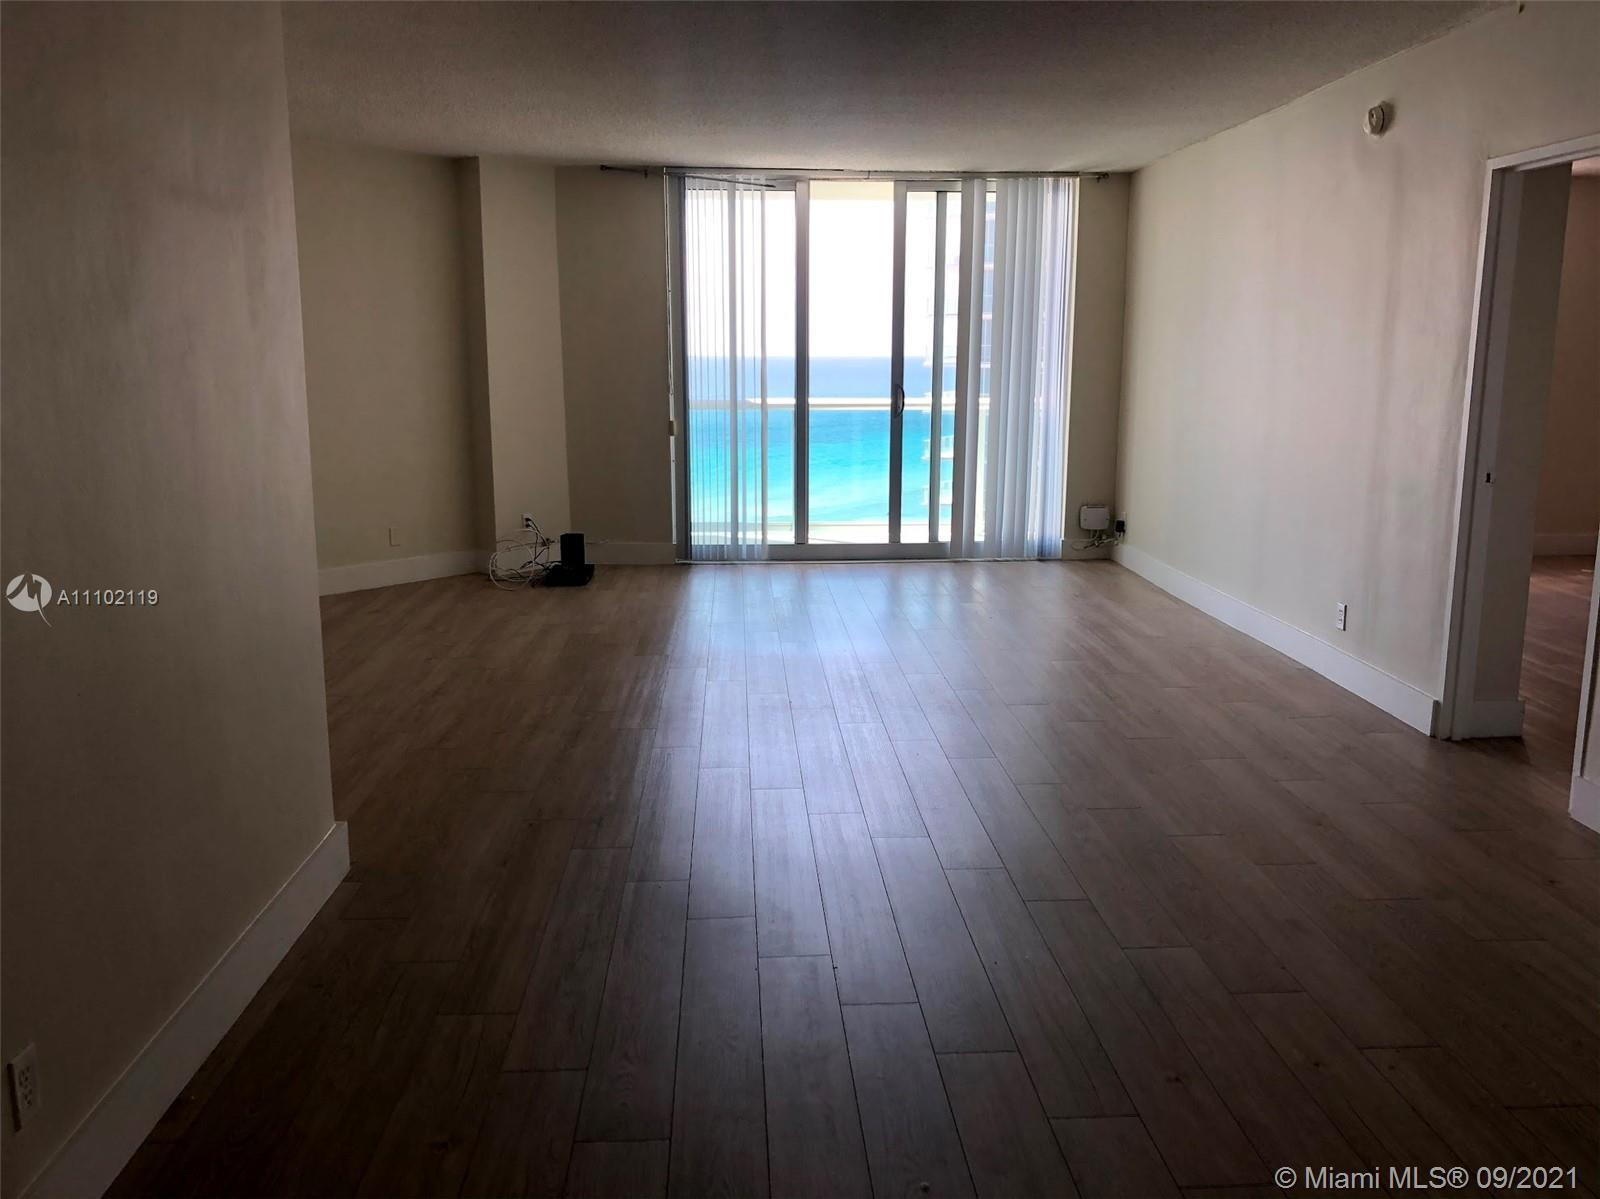 Don't miss out on buying this large ocean view 1 bedroom + den. Investor dream, currently rented. ov